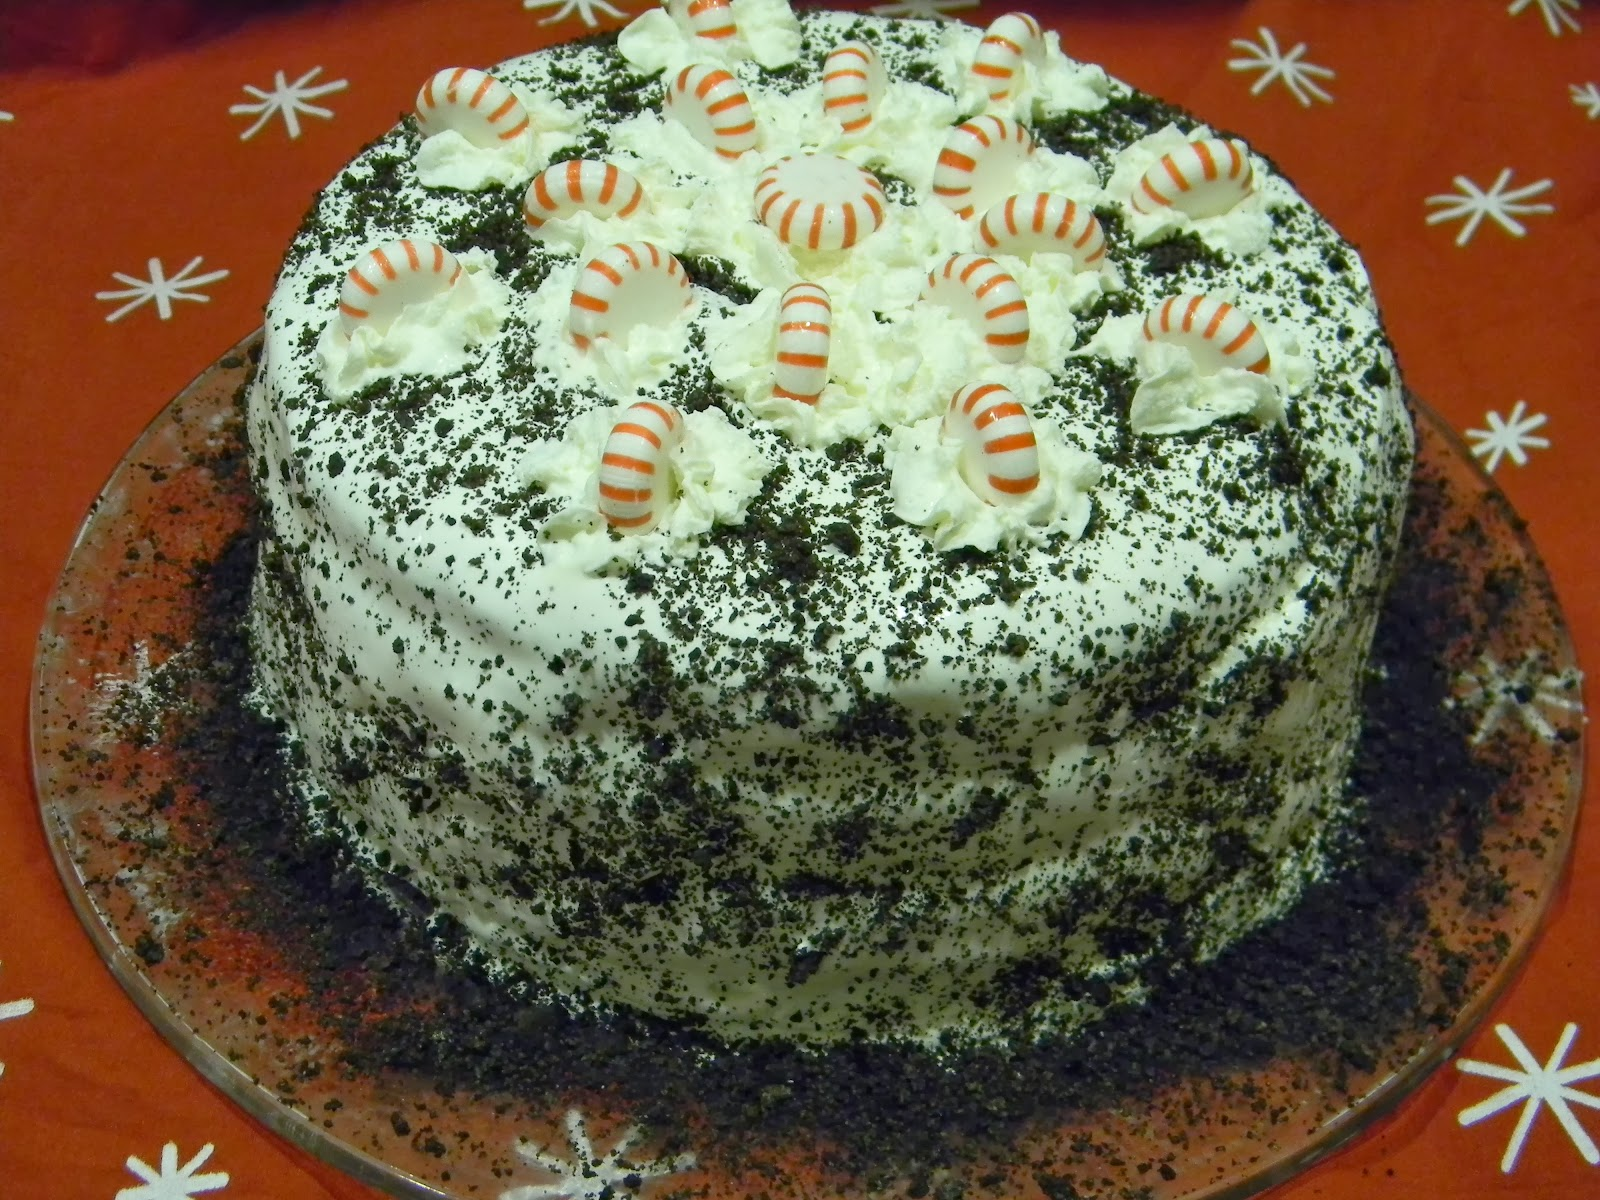 Recipes from the Pickle Boat: Chocolate Peppermint Cake